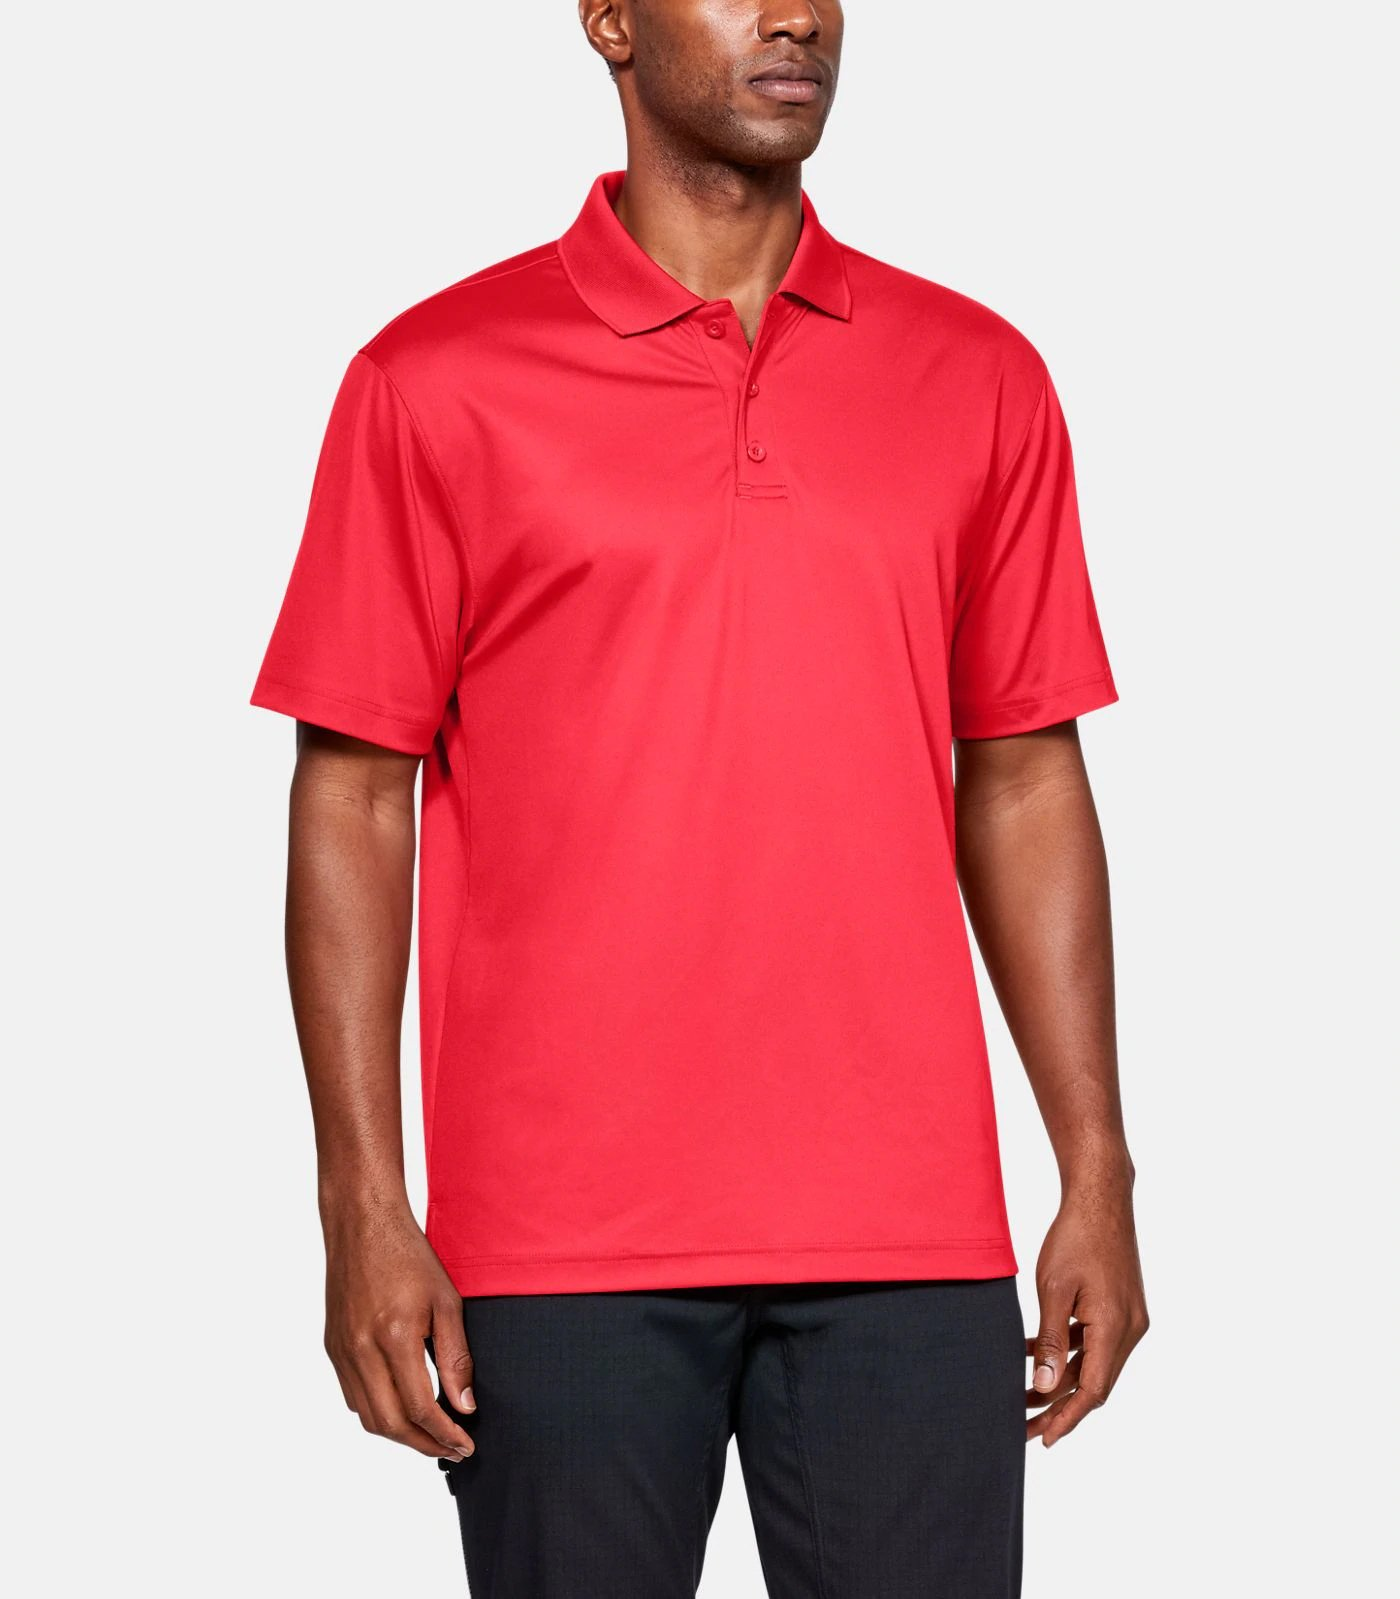 MENS_POLO_TacPerformance-SS_UAR1279759600_01